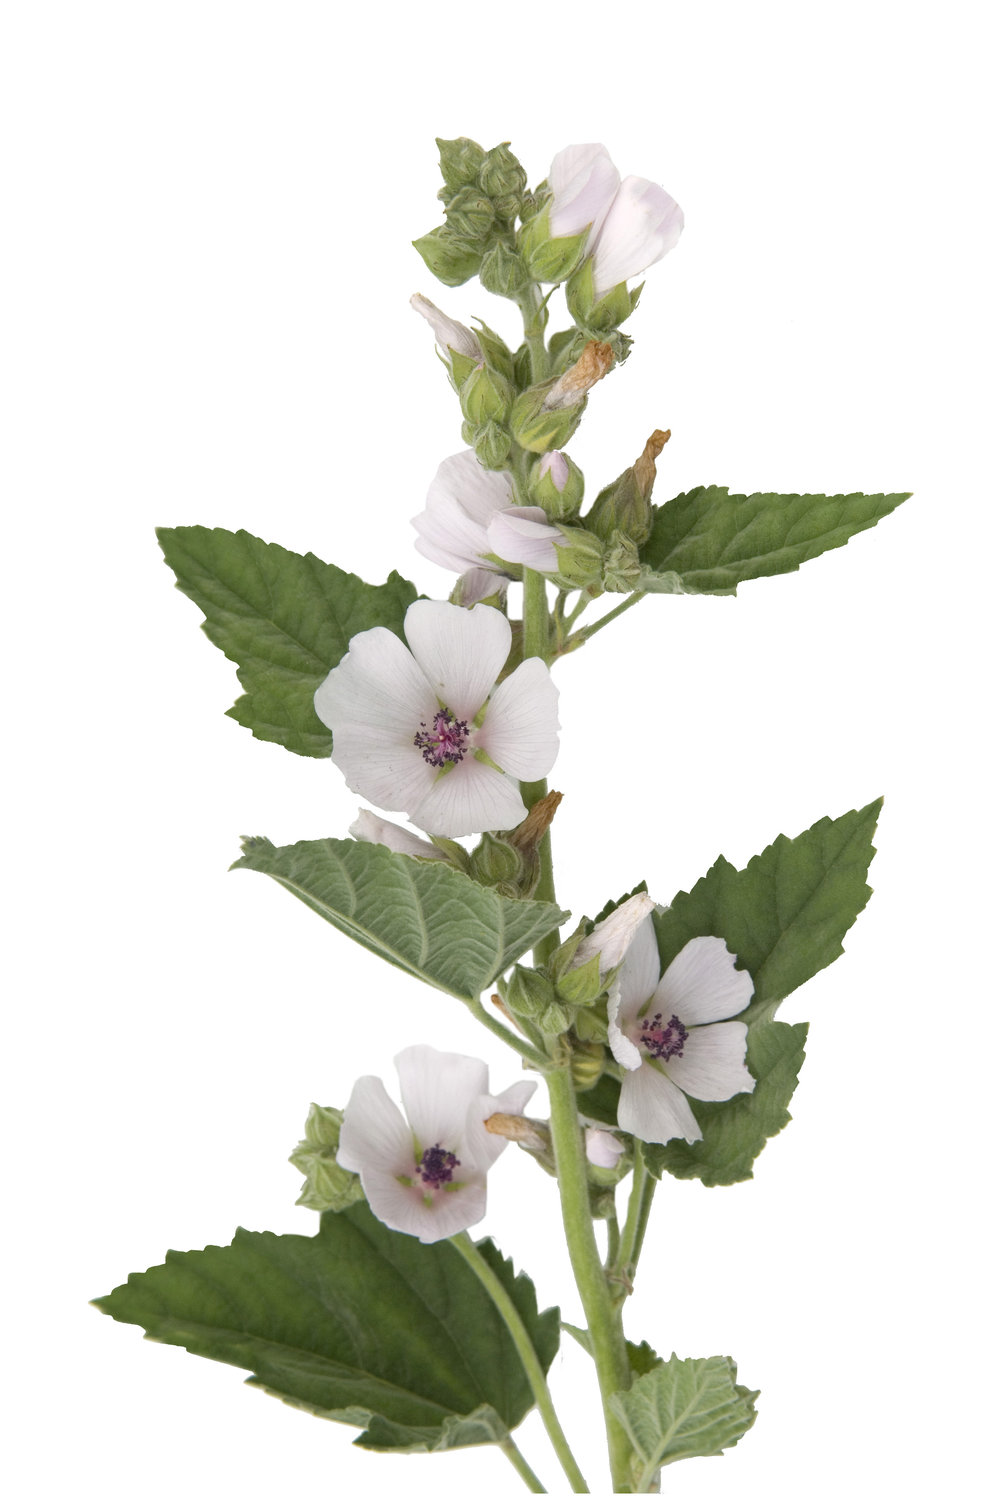 marshmallow plant althaea officinalis.jpeg